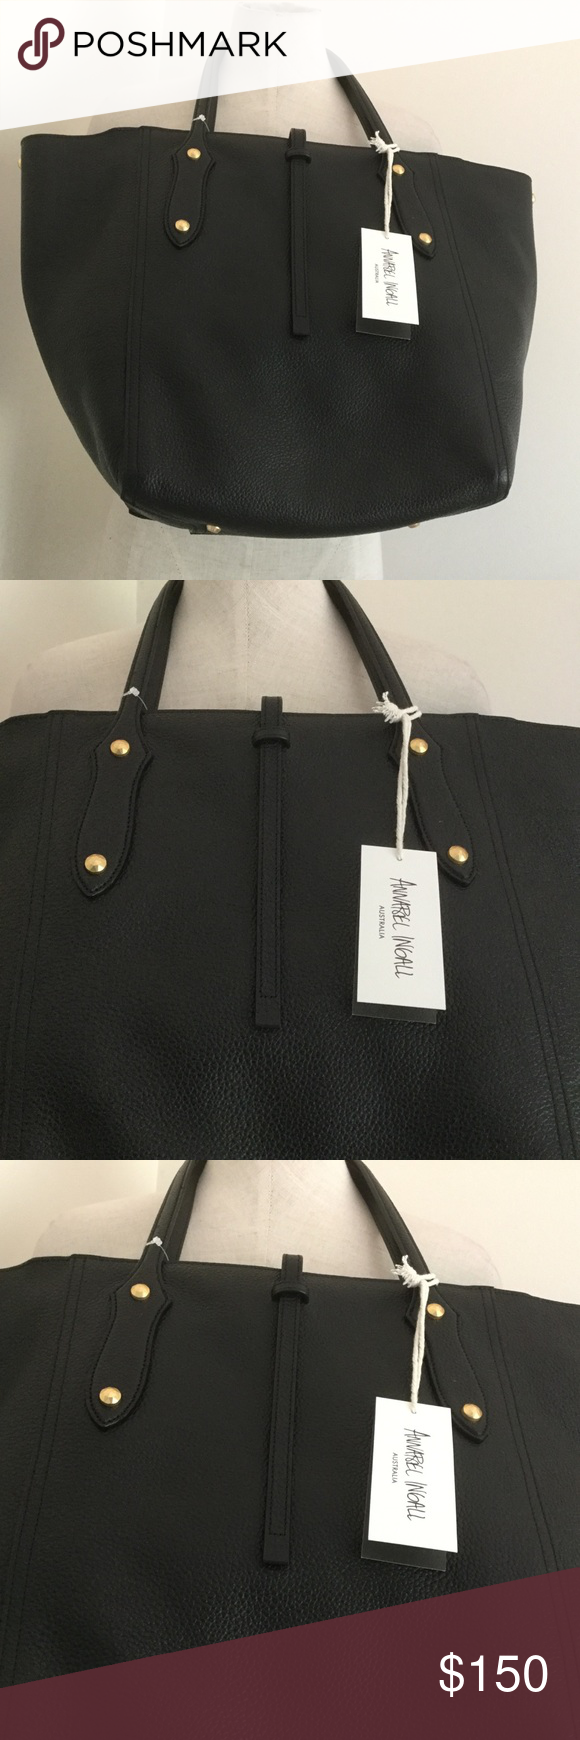 """e8ad1e05374 Annabel Ingall Bibi Tote Bag New Bag Pebble Leather Black Large Size 14 """"  Tall Shoulder carry Bags Totes"""